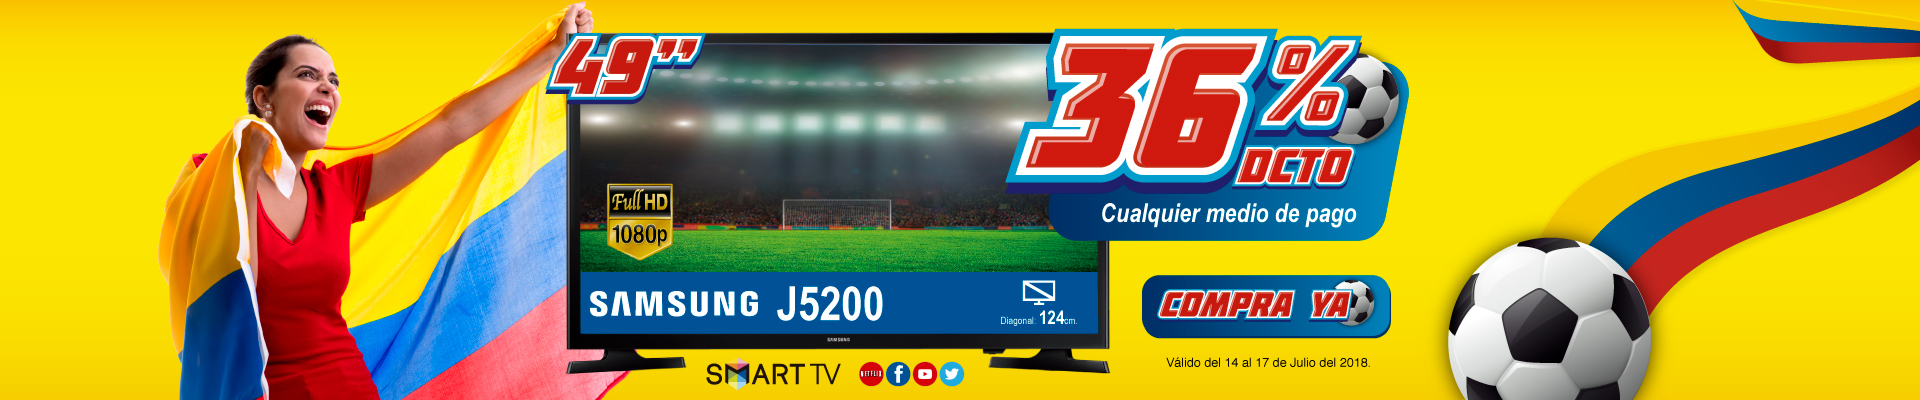 PPAL ALKP-3-tv-49j5200-prod-Julio14-17